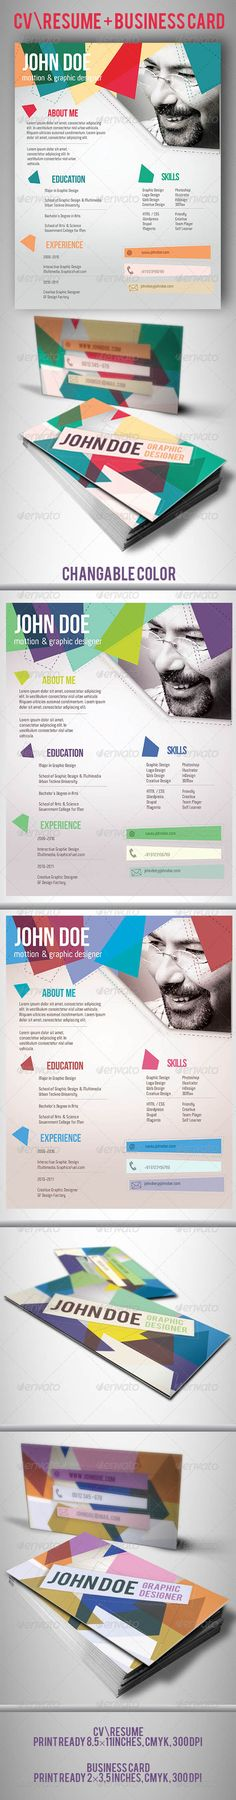 3 Page Business Resume with 3 Color Combinations Business resume - resume for business